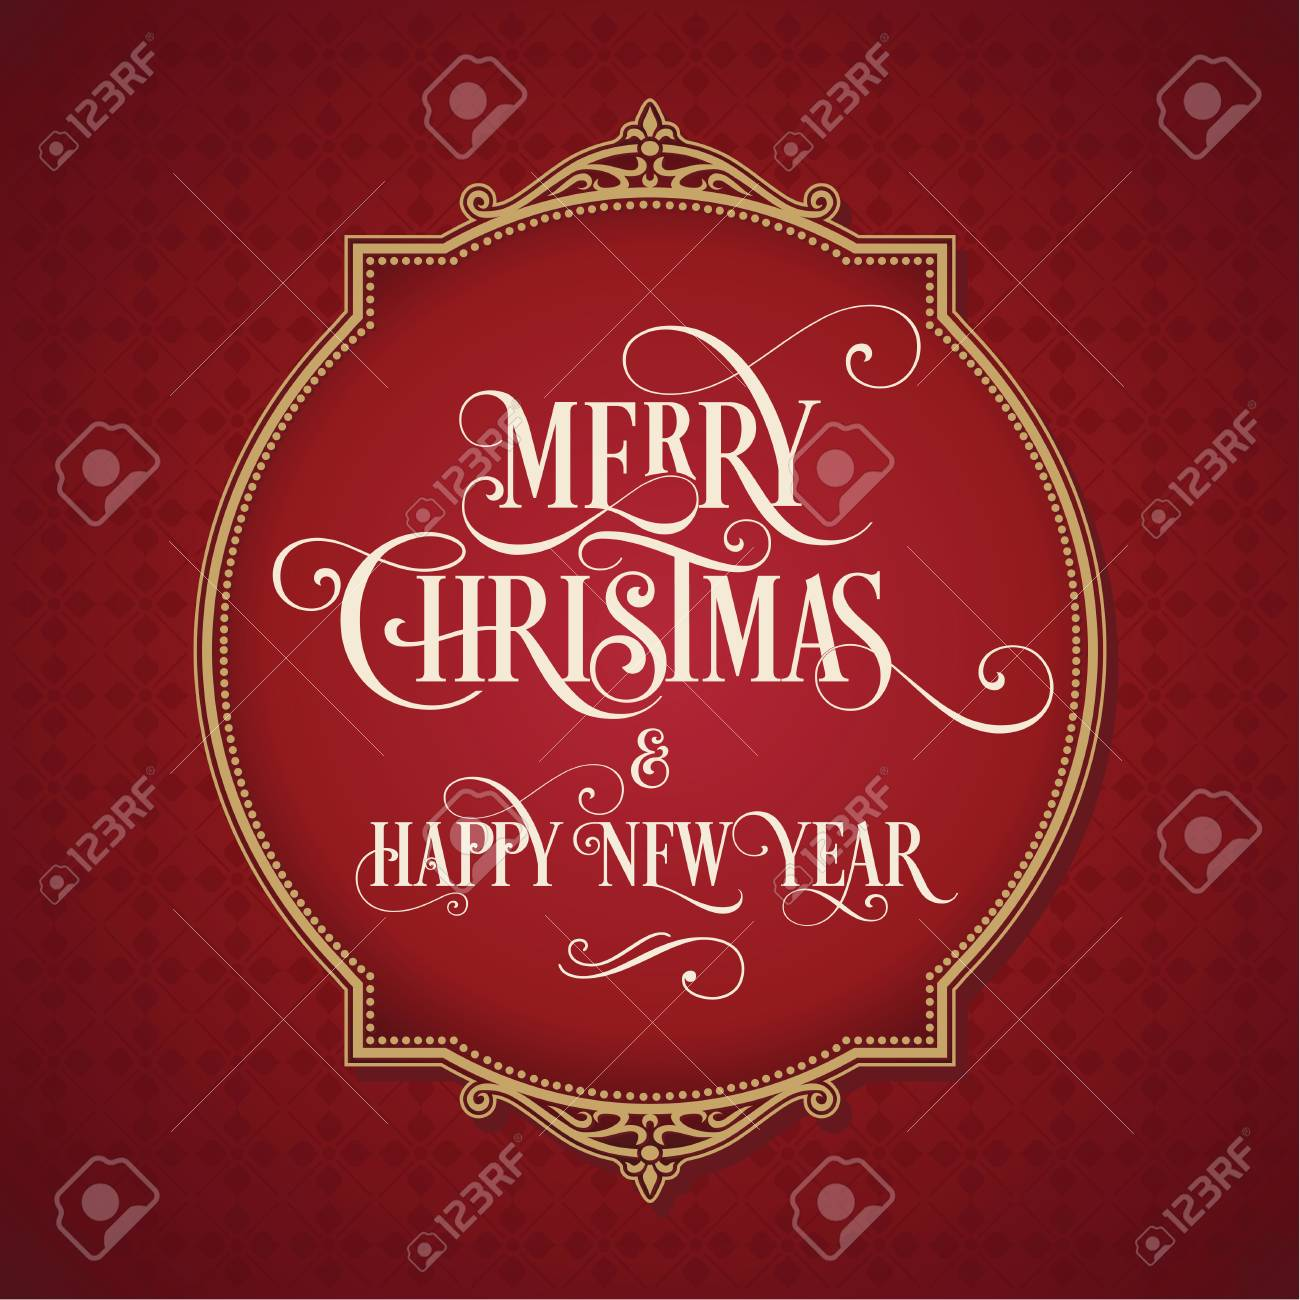 merry christmas and happy new year card background xmas banner stock vector